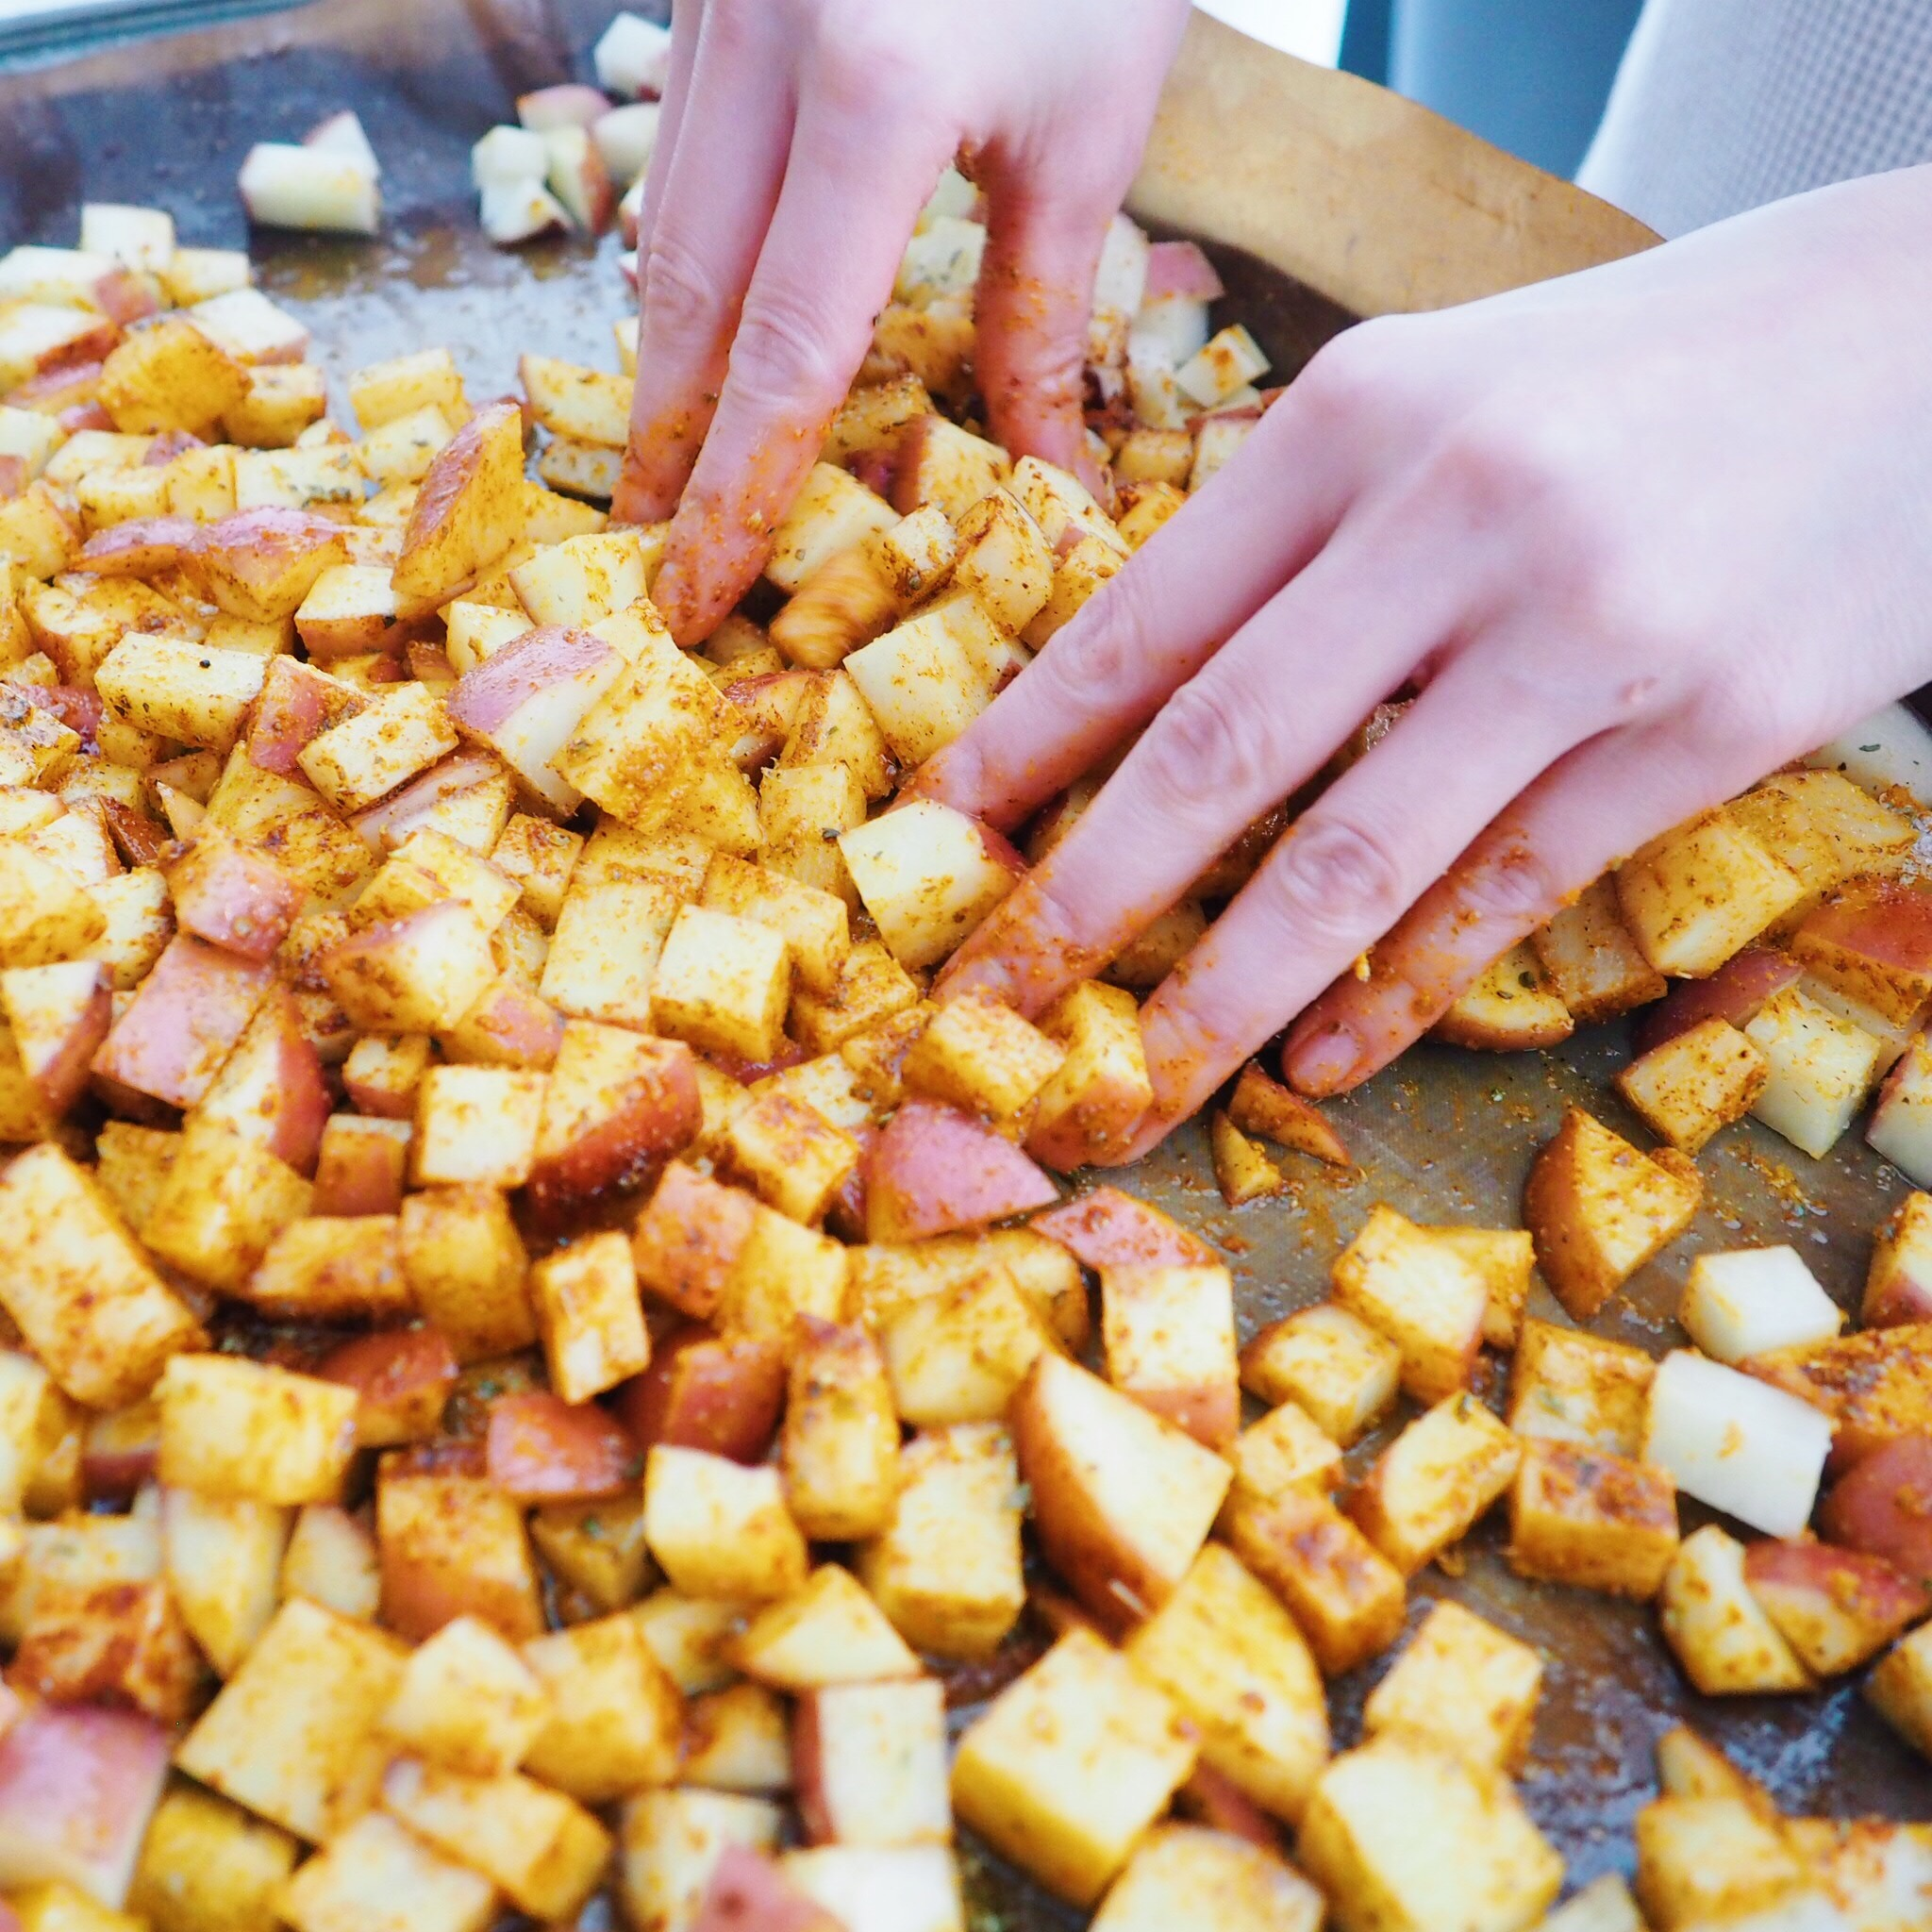 Step 5 - Using your hands massage oil and spices into each tater. Spread taters into a single layer giving enough space between.